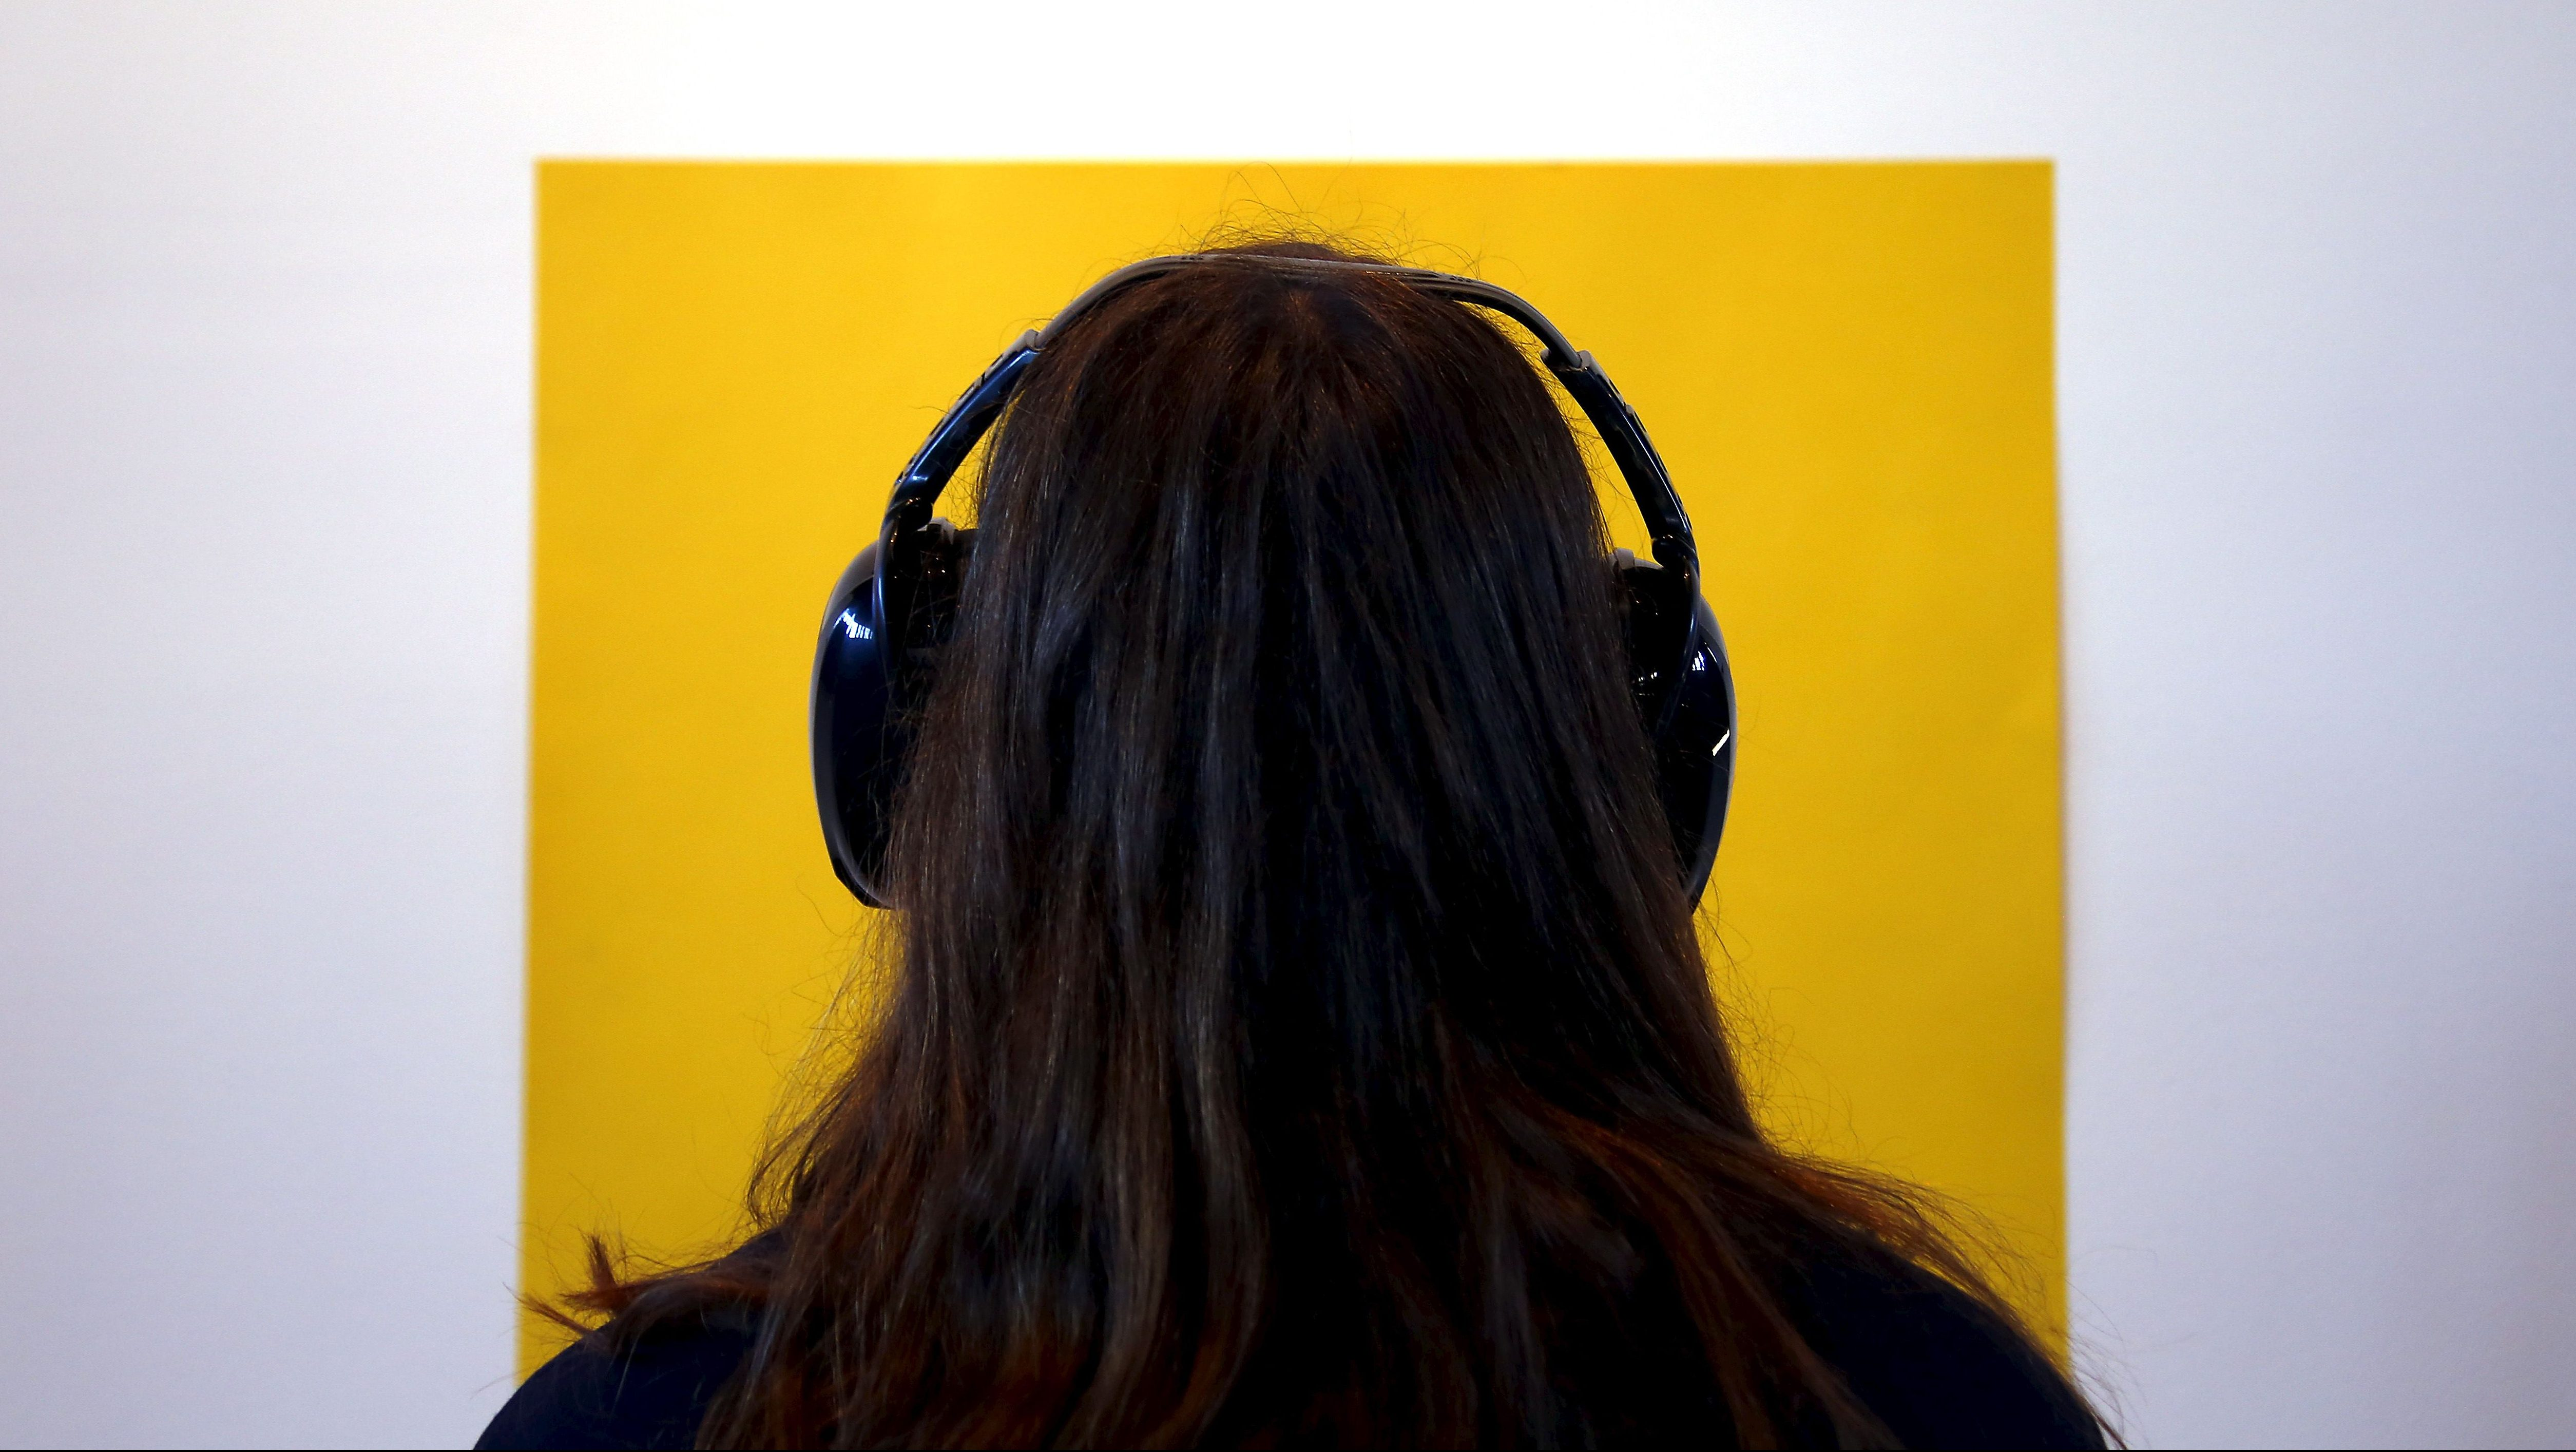 """A visitor wearing noise-cancelling headphones as she tours the latest project by performance artist Marina Abramovic titled """"Marina Abramovic: In Residence"""" on display as part of a public art project in Sydney"""